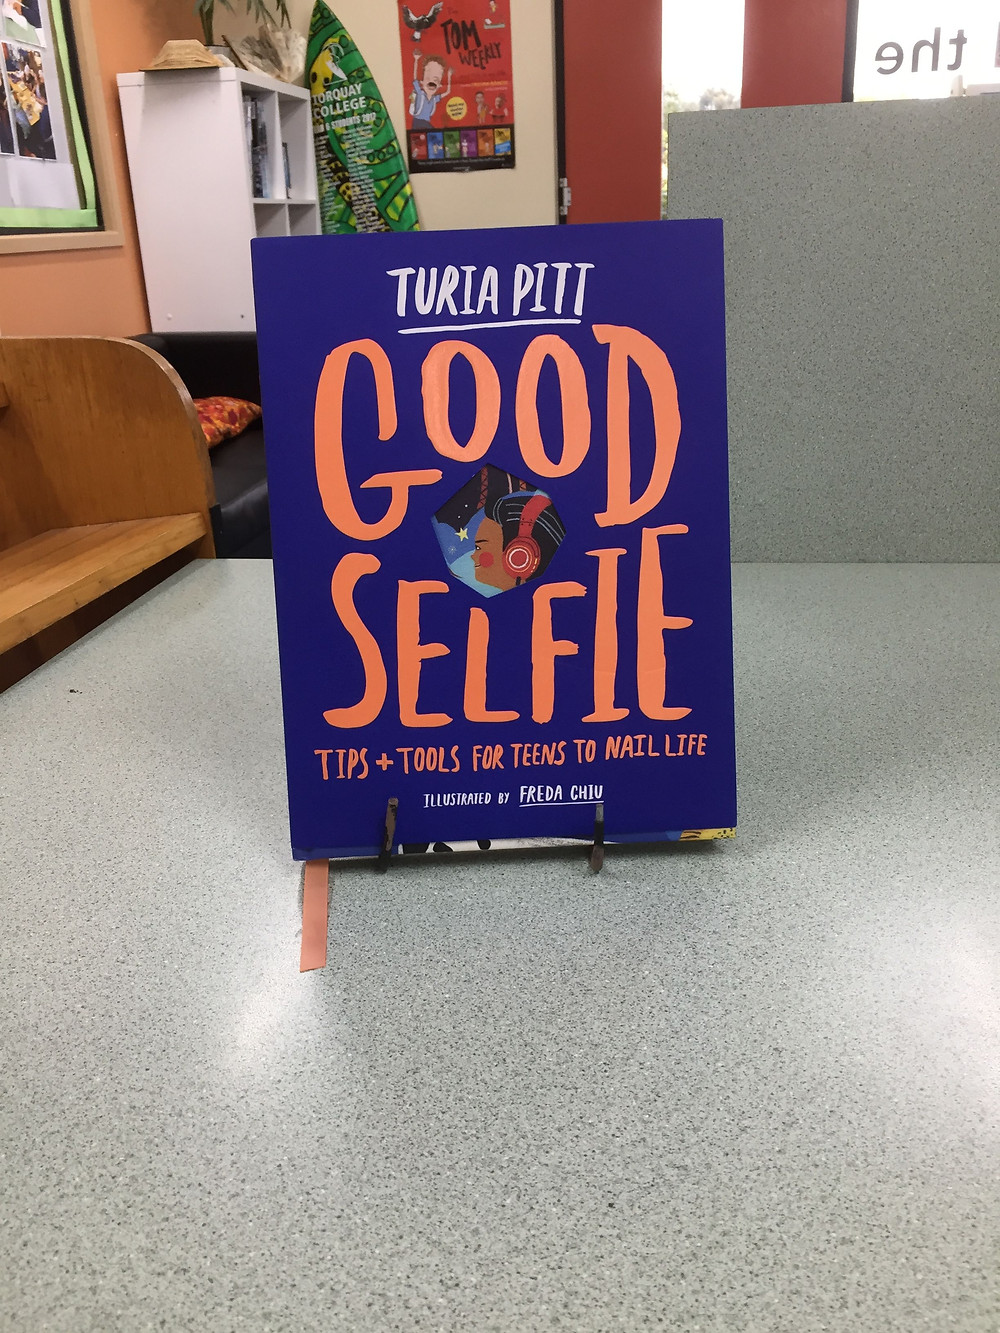 Good Selfie contains simple strategies to help kids and teens build their self-confidence, get through hard times and go after their goals.